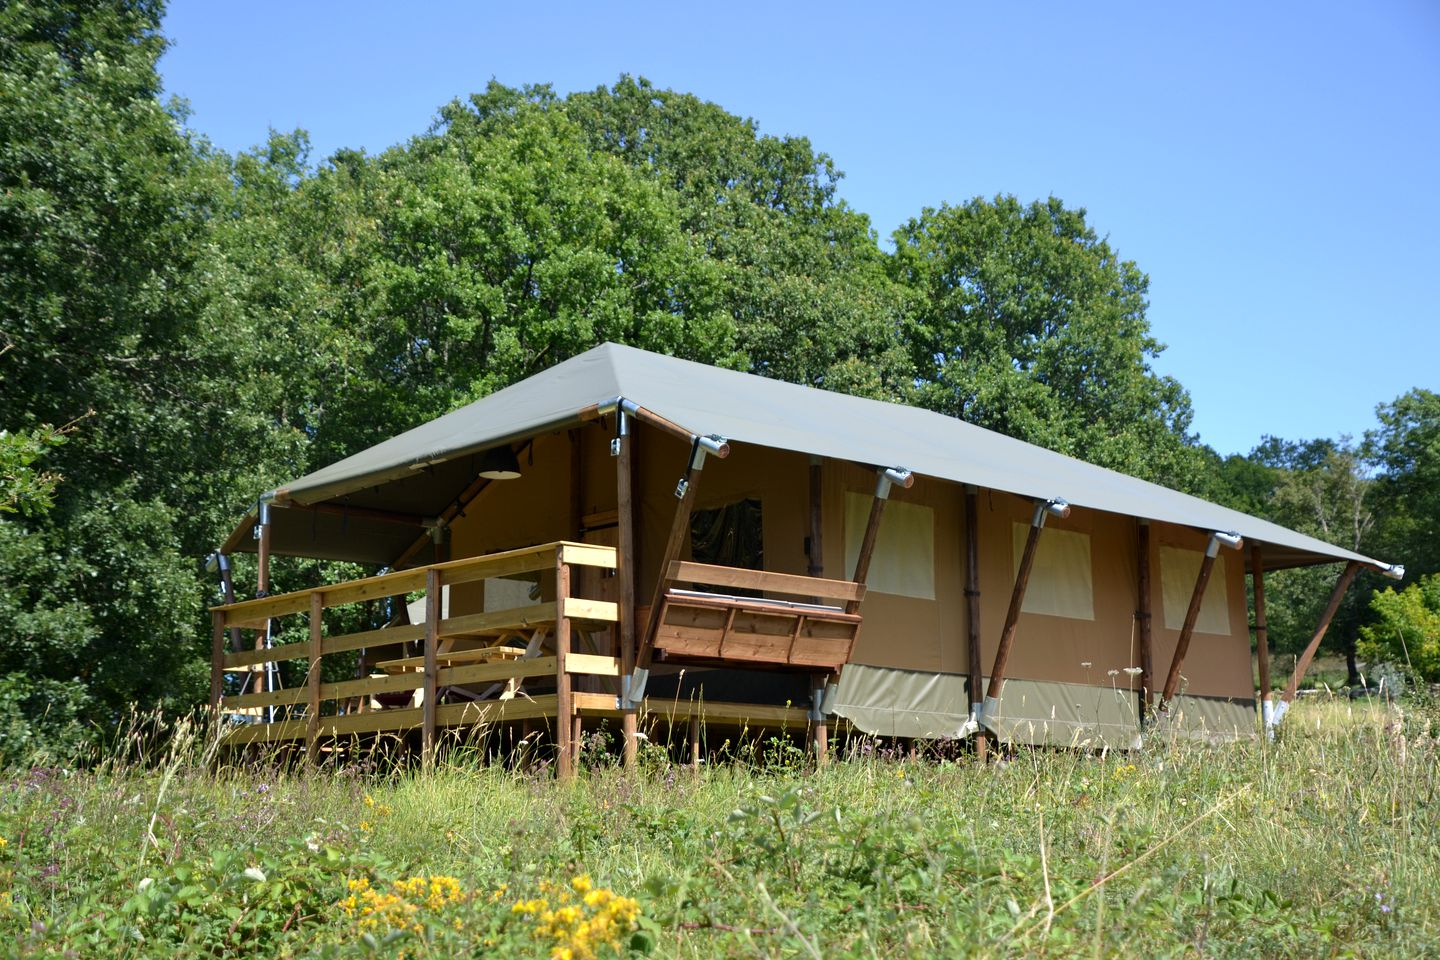 This amazing safari tent rental is ideal for glamping in France